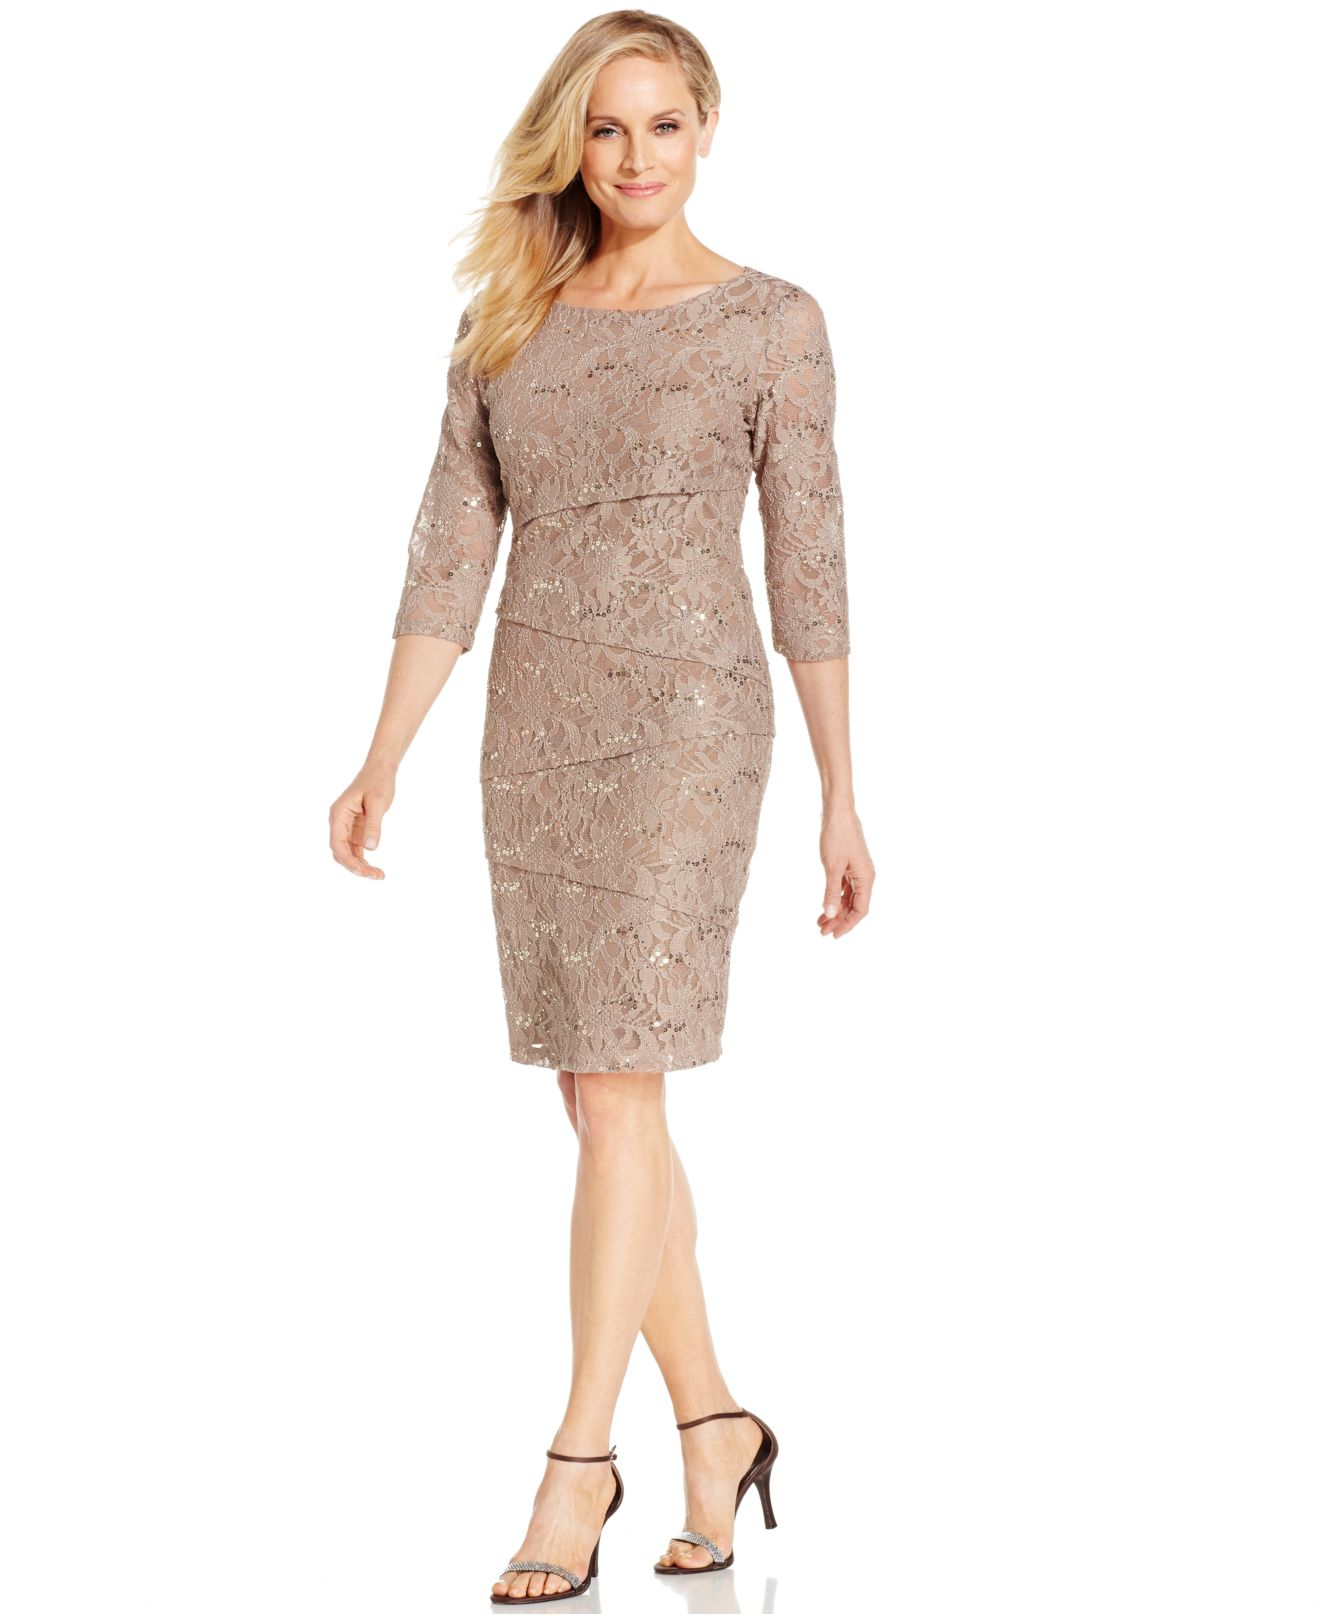 ca14ddab10 Ronni Nicole Tiered Sequin Lace Dress in Brown - Lyst